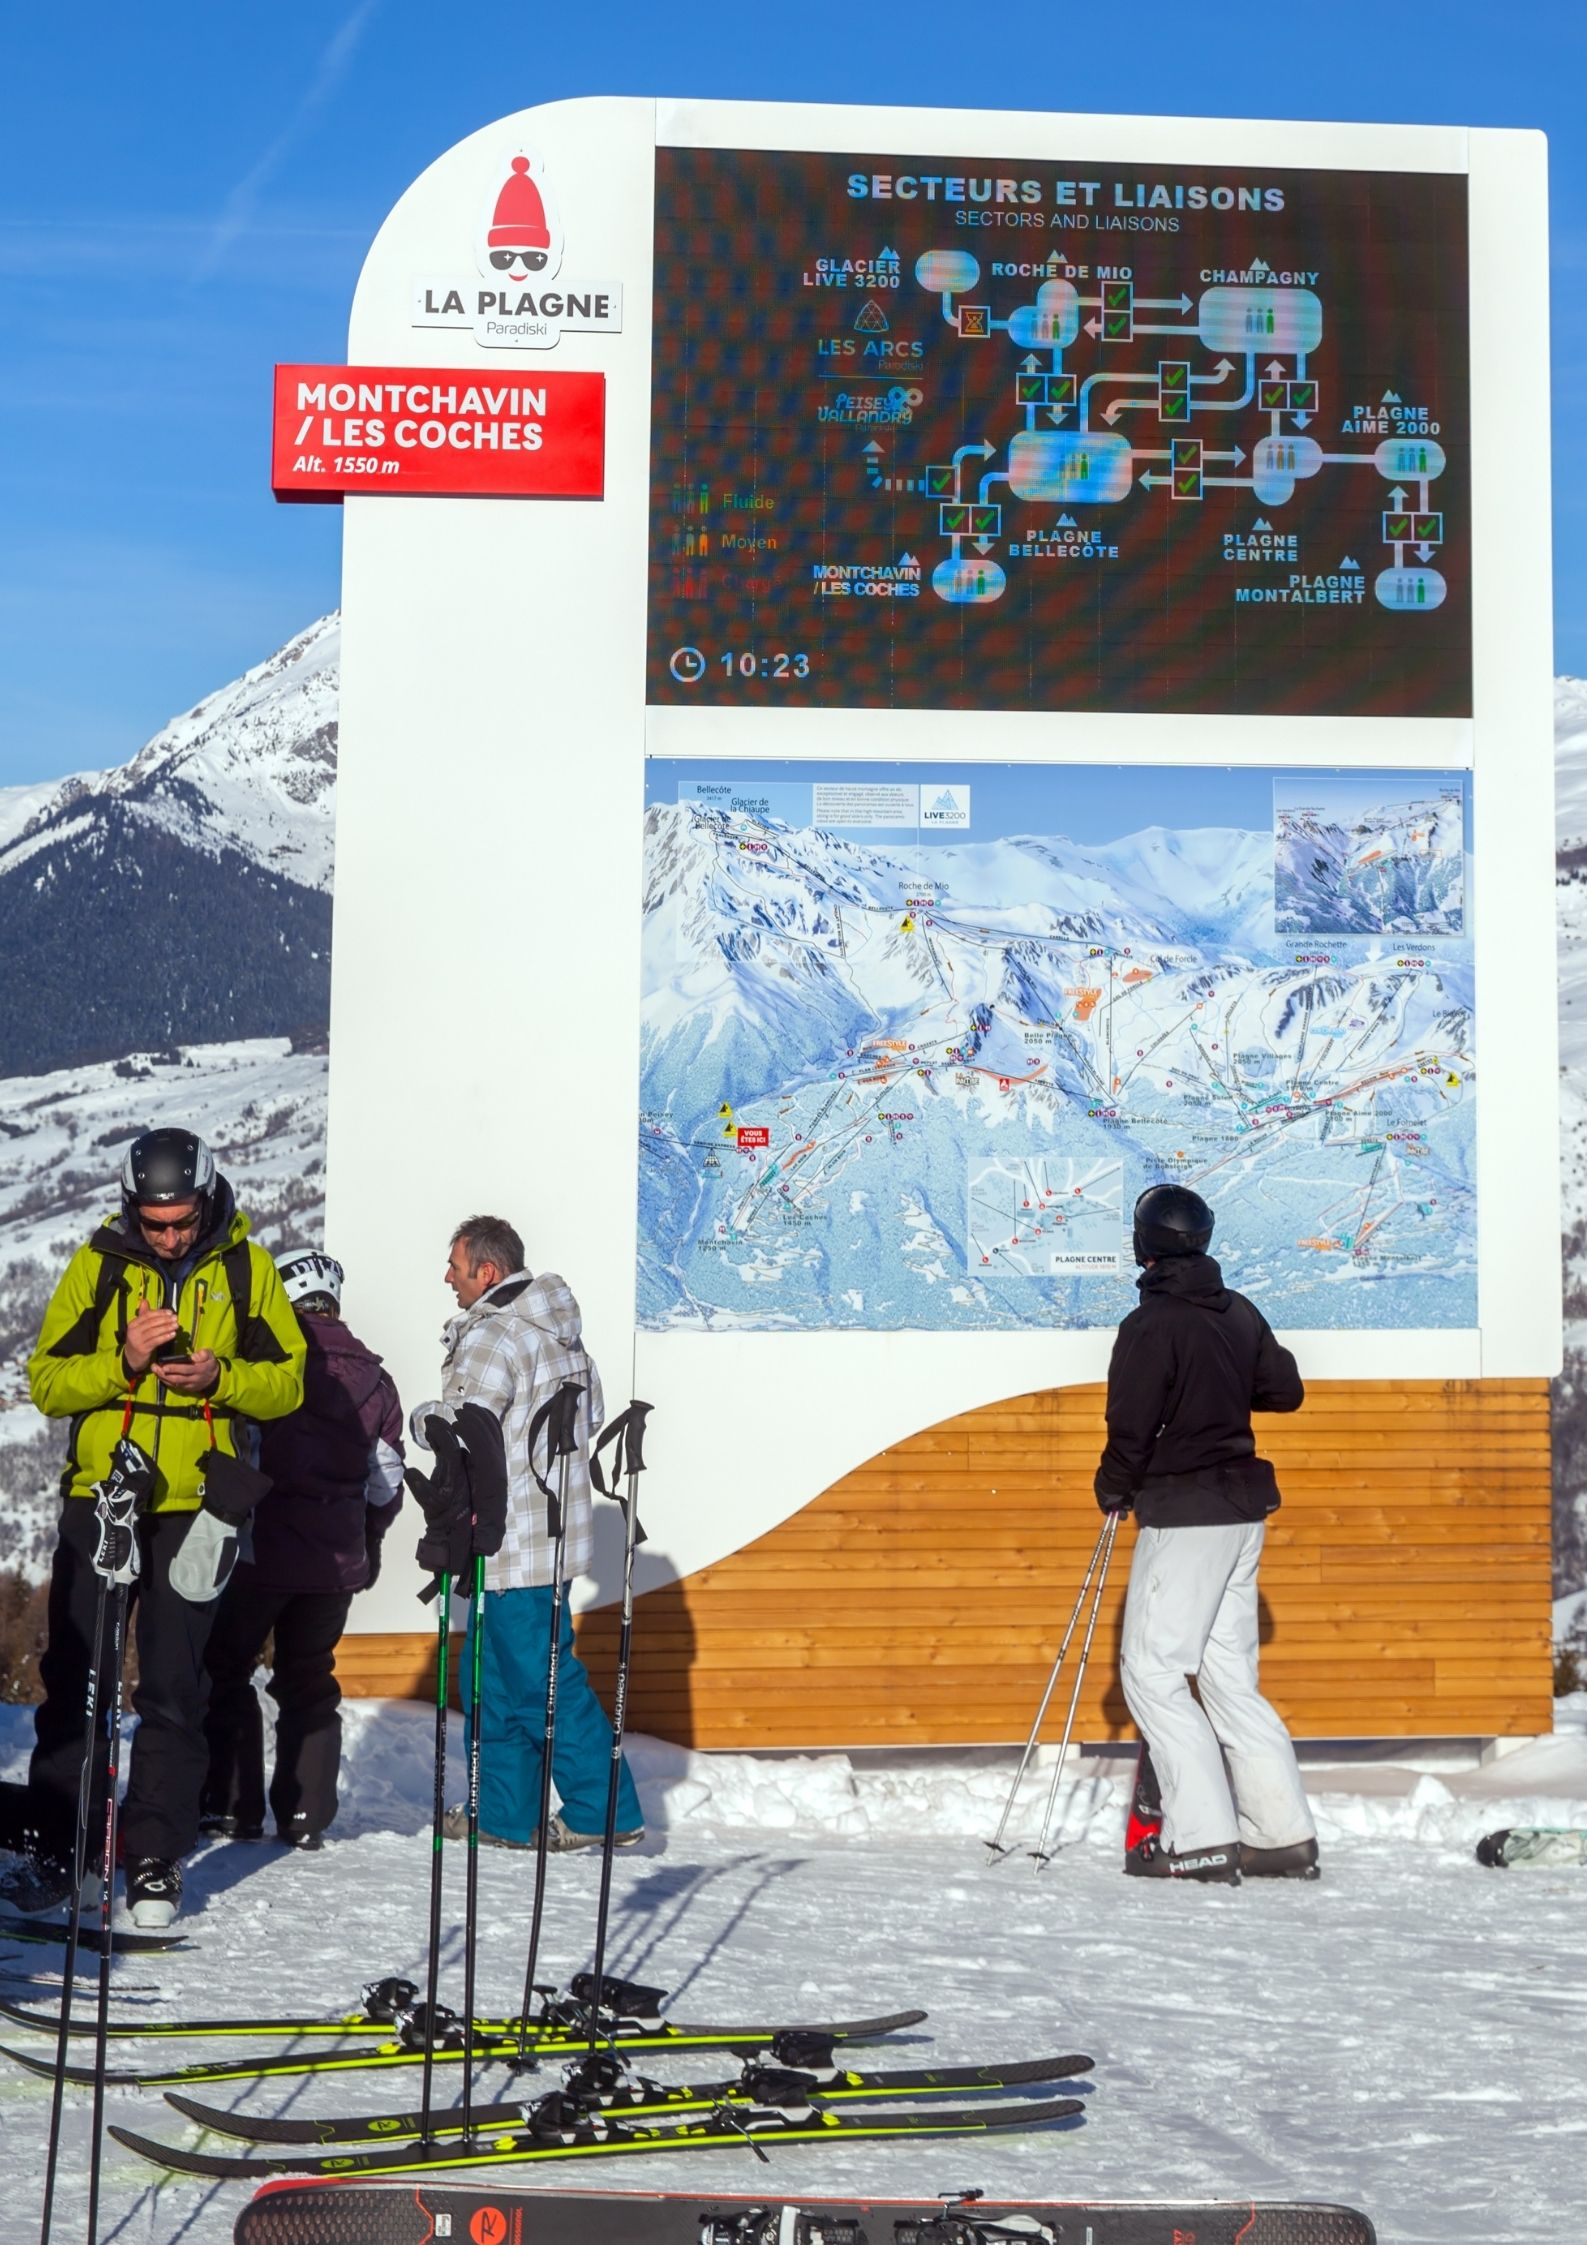 Digital Signage in Ski Resort